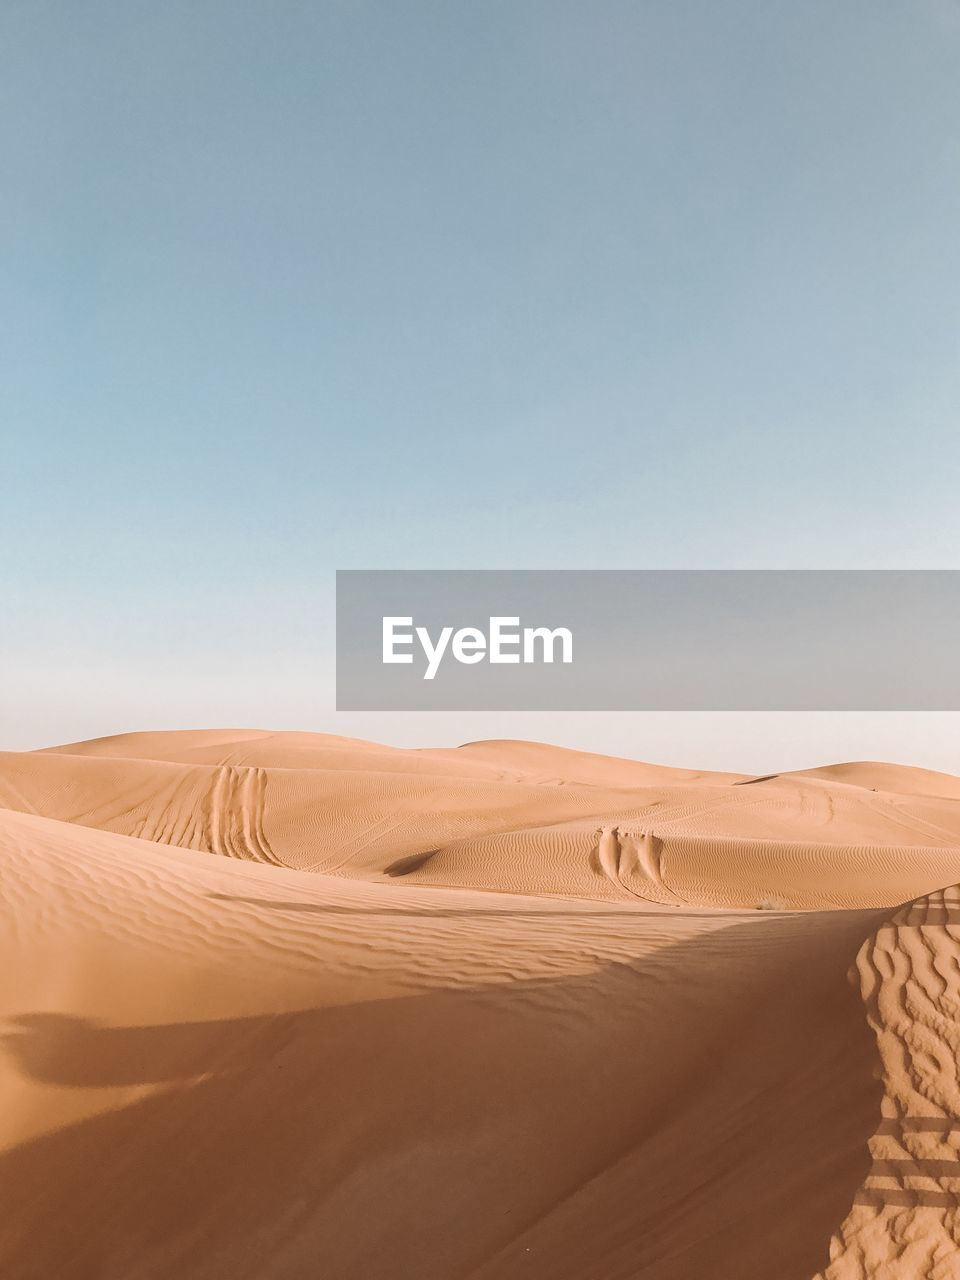 desert, sand dune, arid climate, climate, sand, scenics - nature, landscape, sky, land, tranquil scene, tranquility, environment, non-urban scene, beauty in nature, nature, clear sky, copy space, remote, day, no people, atmospheric